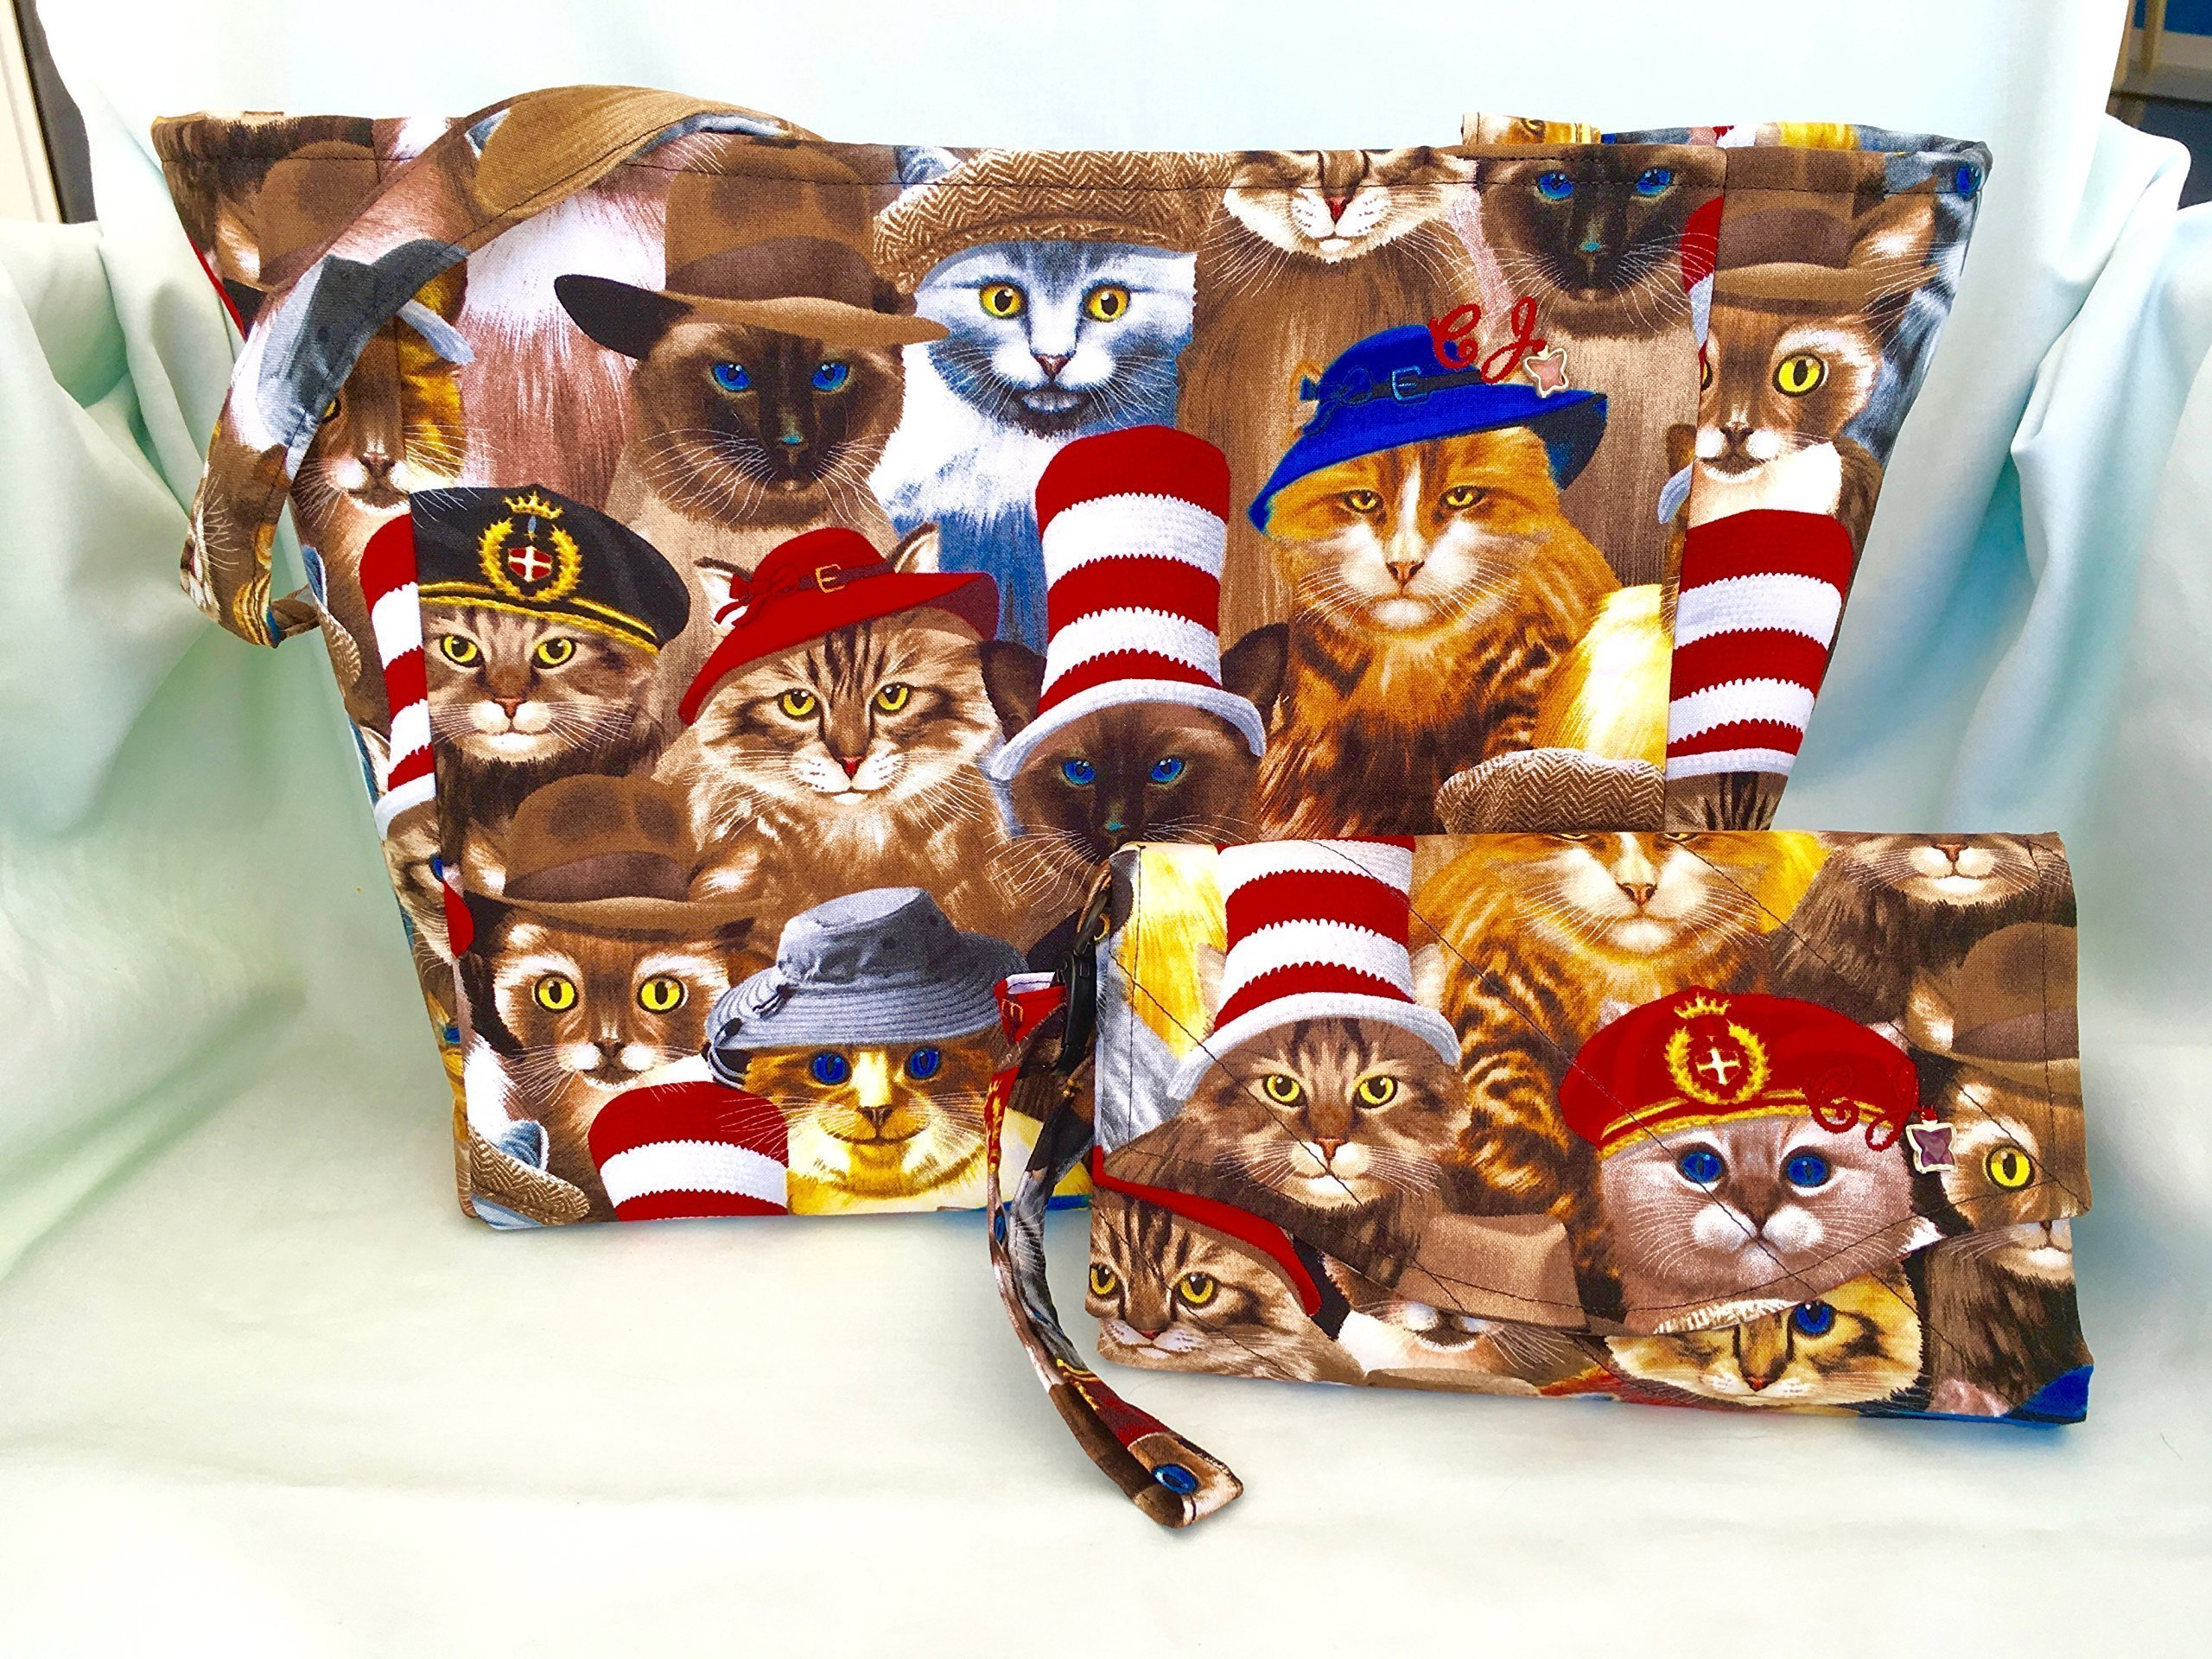 Cats with Hats Purse and Billfold/Wallet/Small Tote/Womens/Girls/Shoulder Bag/Wristlets,Clutch,Everyday Purse,Cross-Body